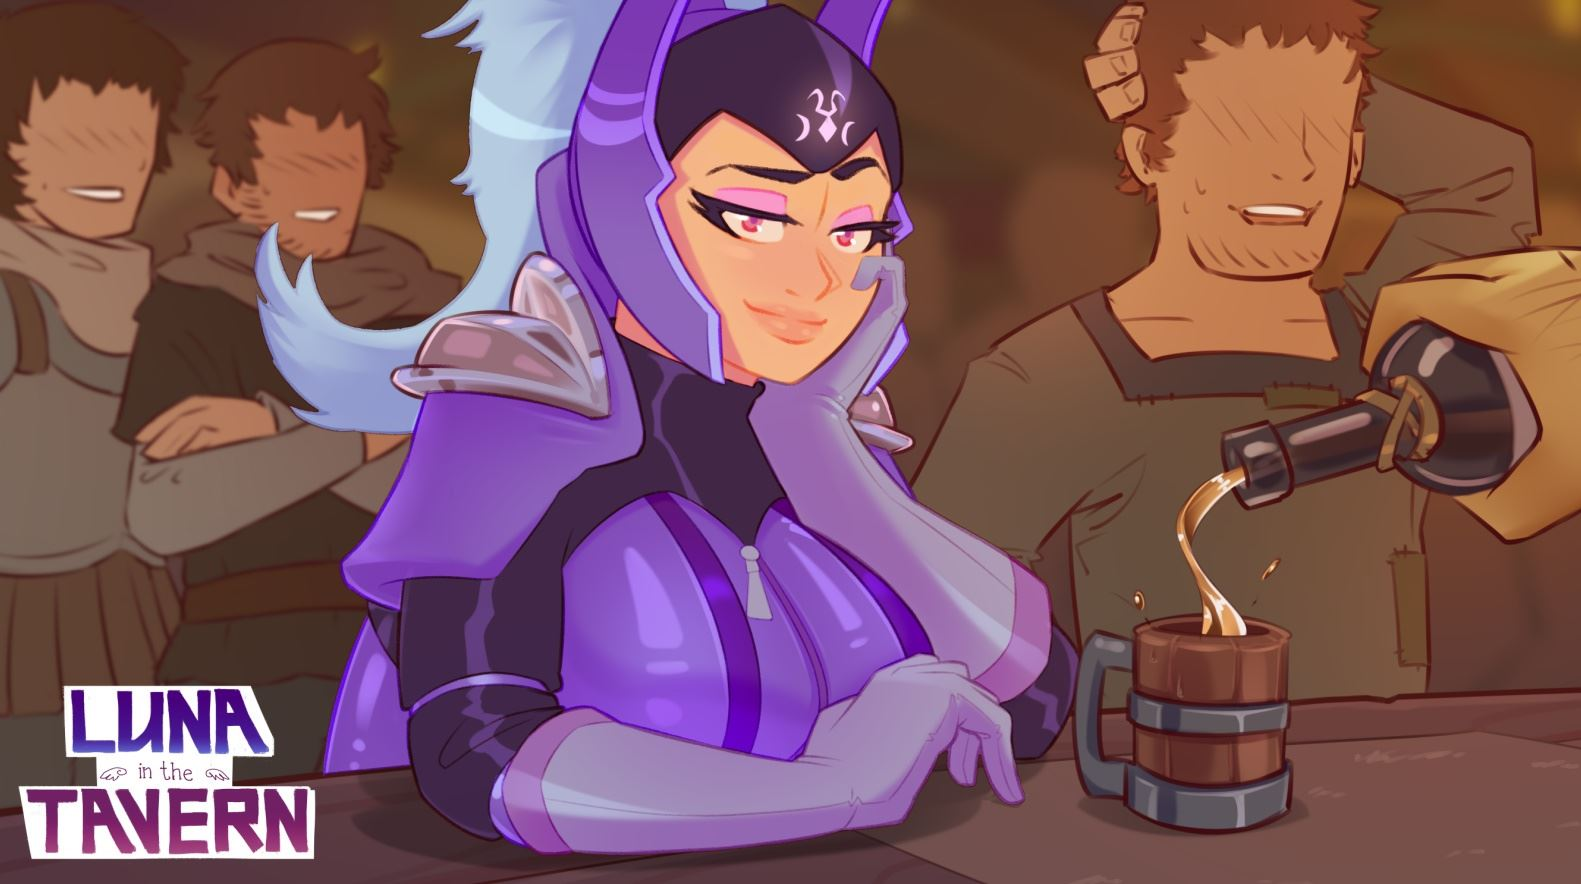 Luna in the Tavern